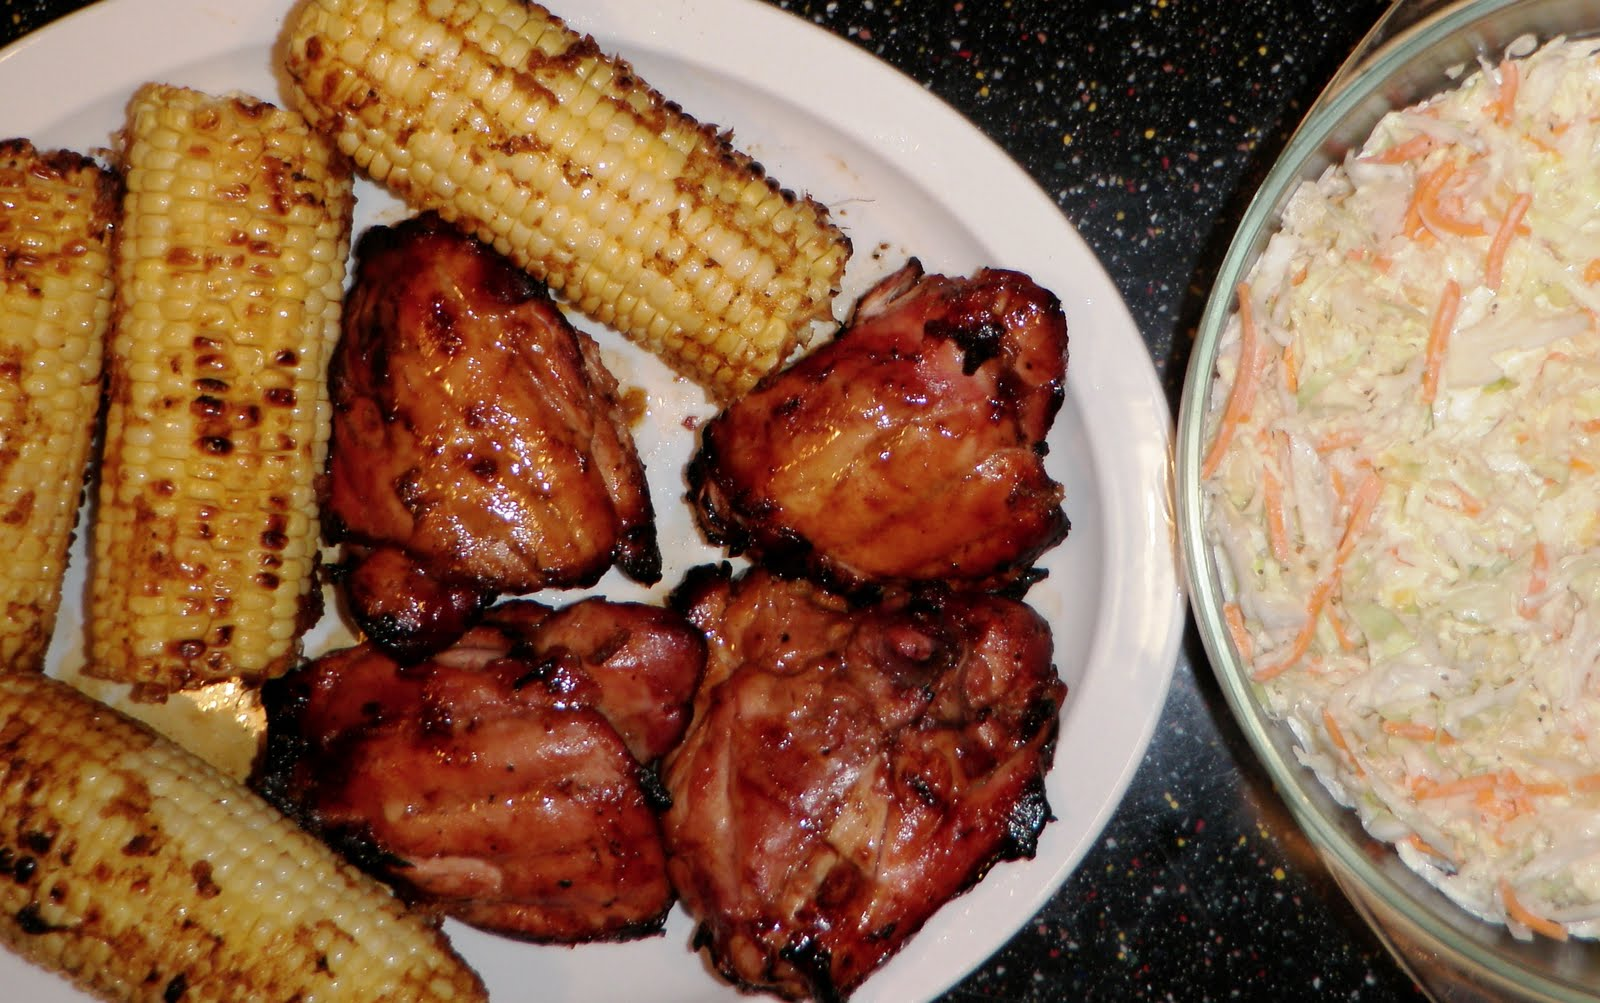 ... : SANDRA'S GRILLED COLA CHICKEN THIGHS with GRILLED CORN and COLESLAW